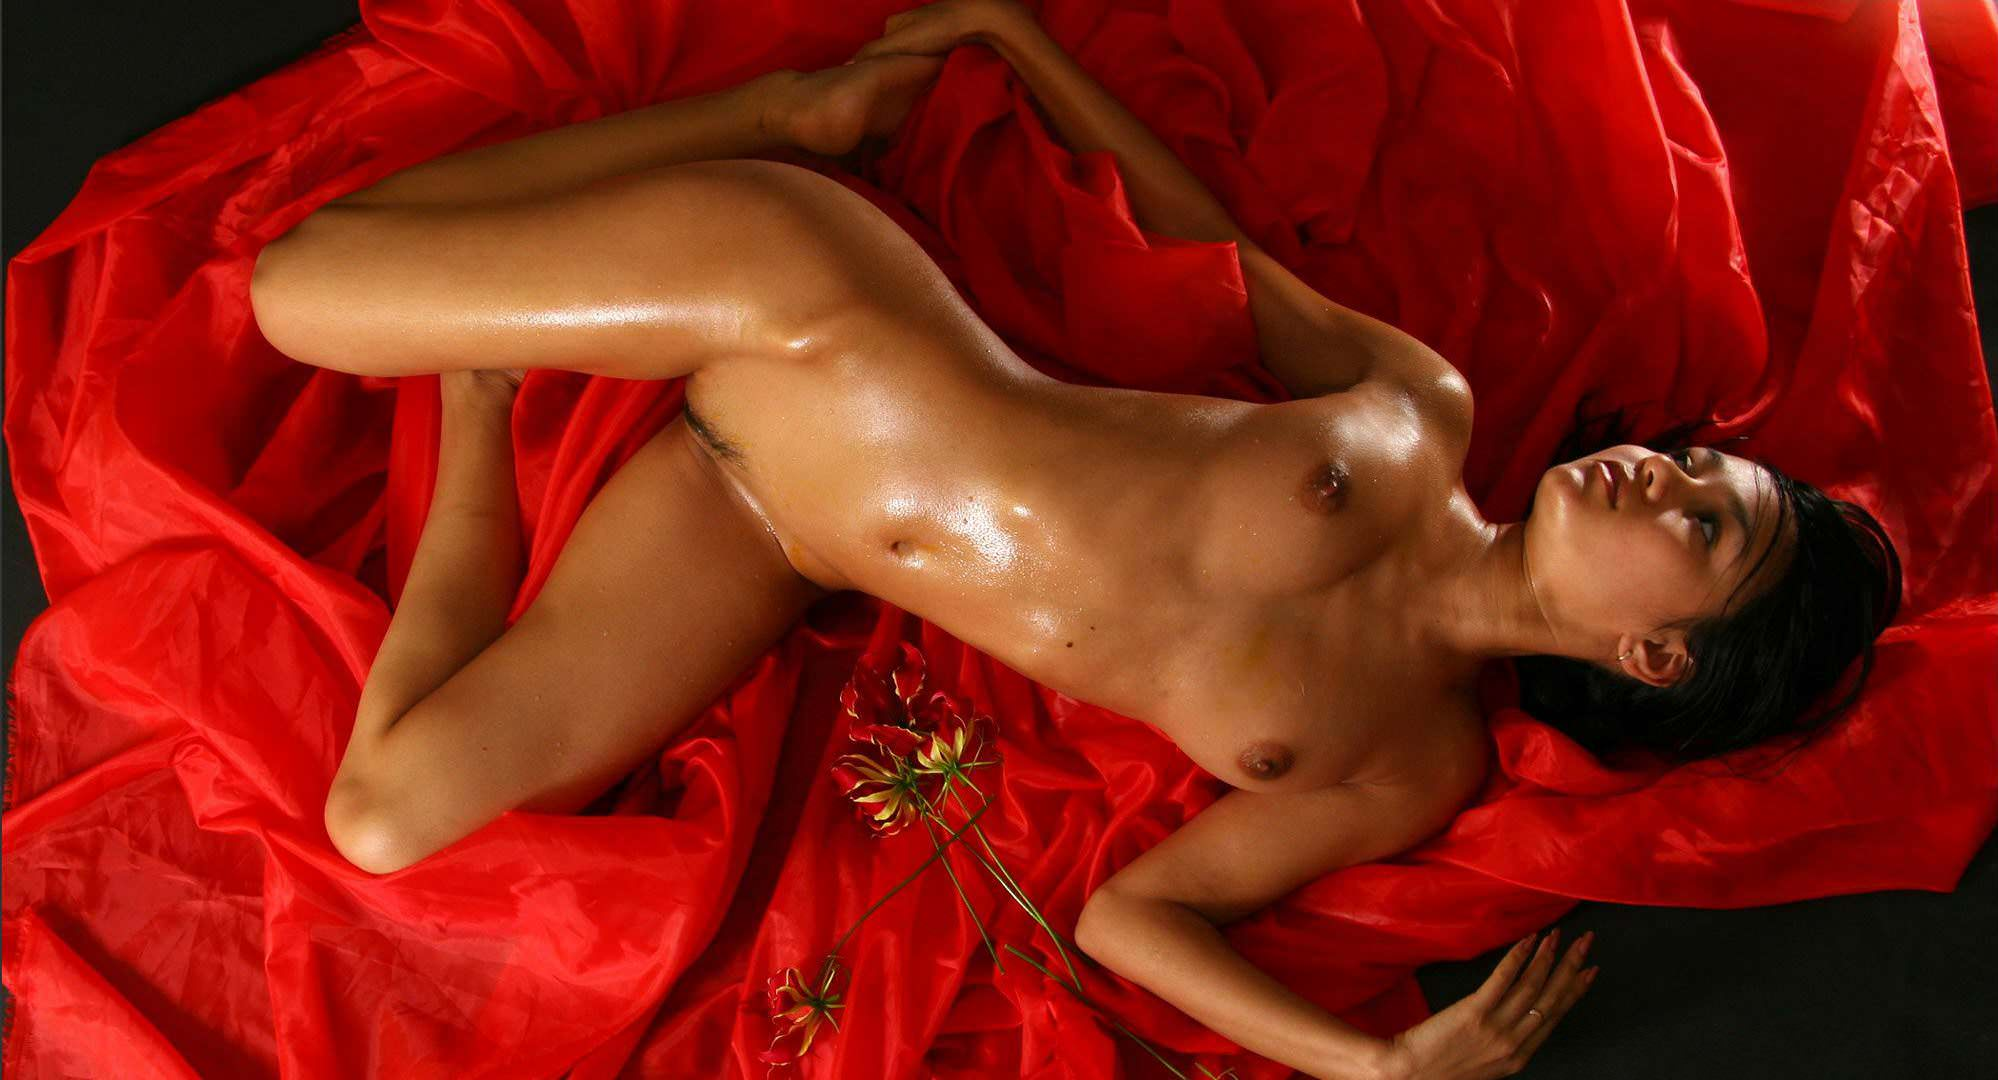 Indian Porn Star Naked Kamashutra Sex Photo